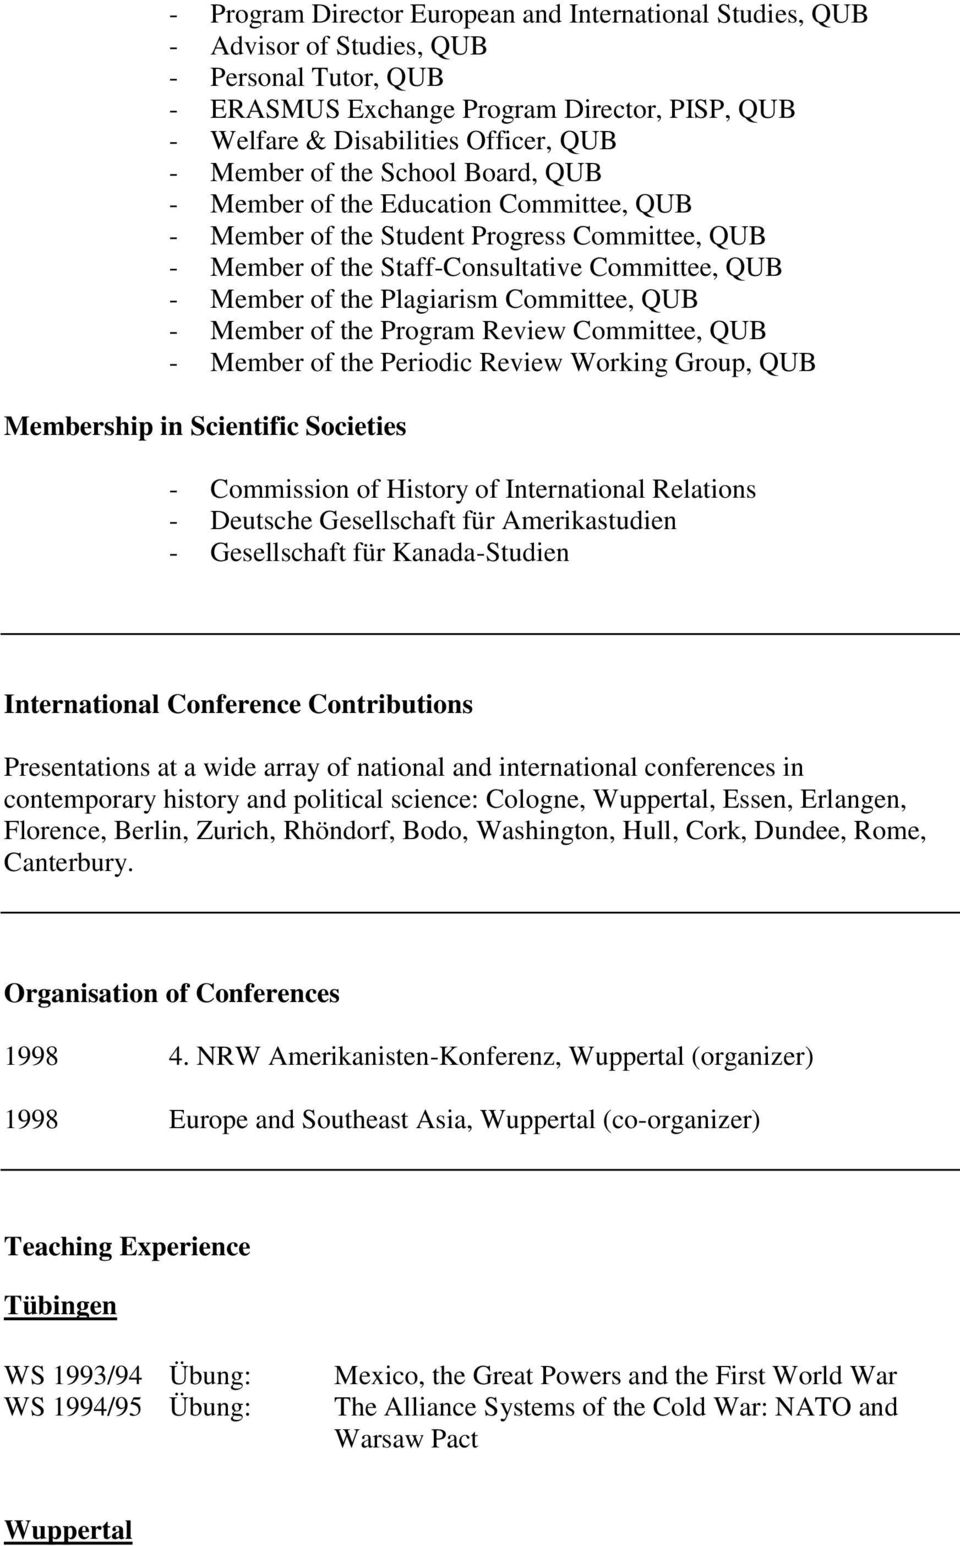 Committee, QUB - Member of the Program Review Committee, QUB - Member of the Periodic Review Working Group, QUB Membership in Scientific Societies - Commission of History of International Relations -